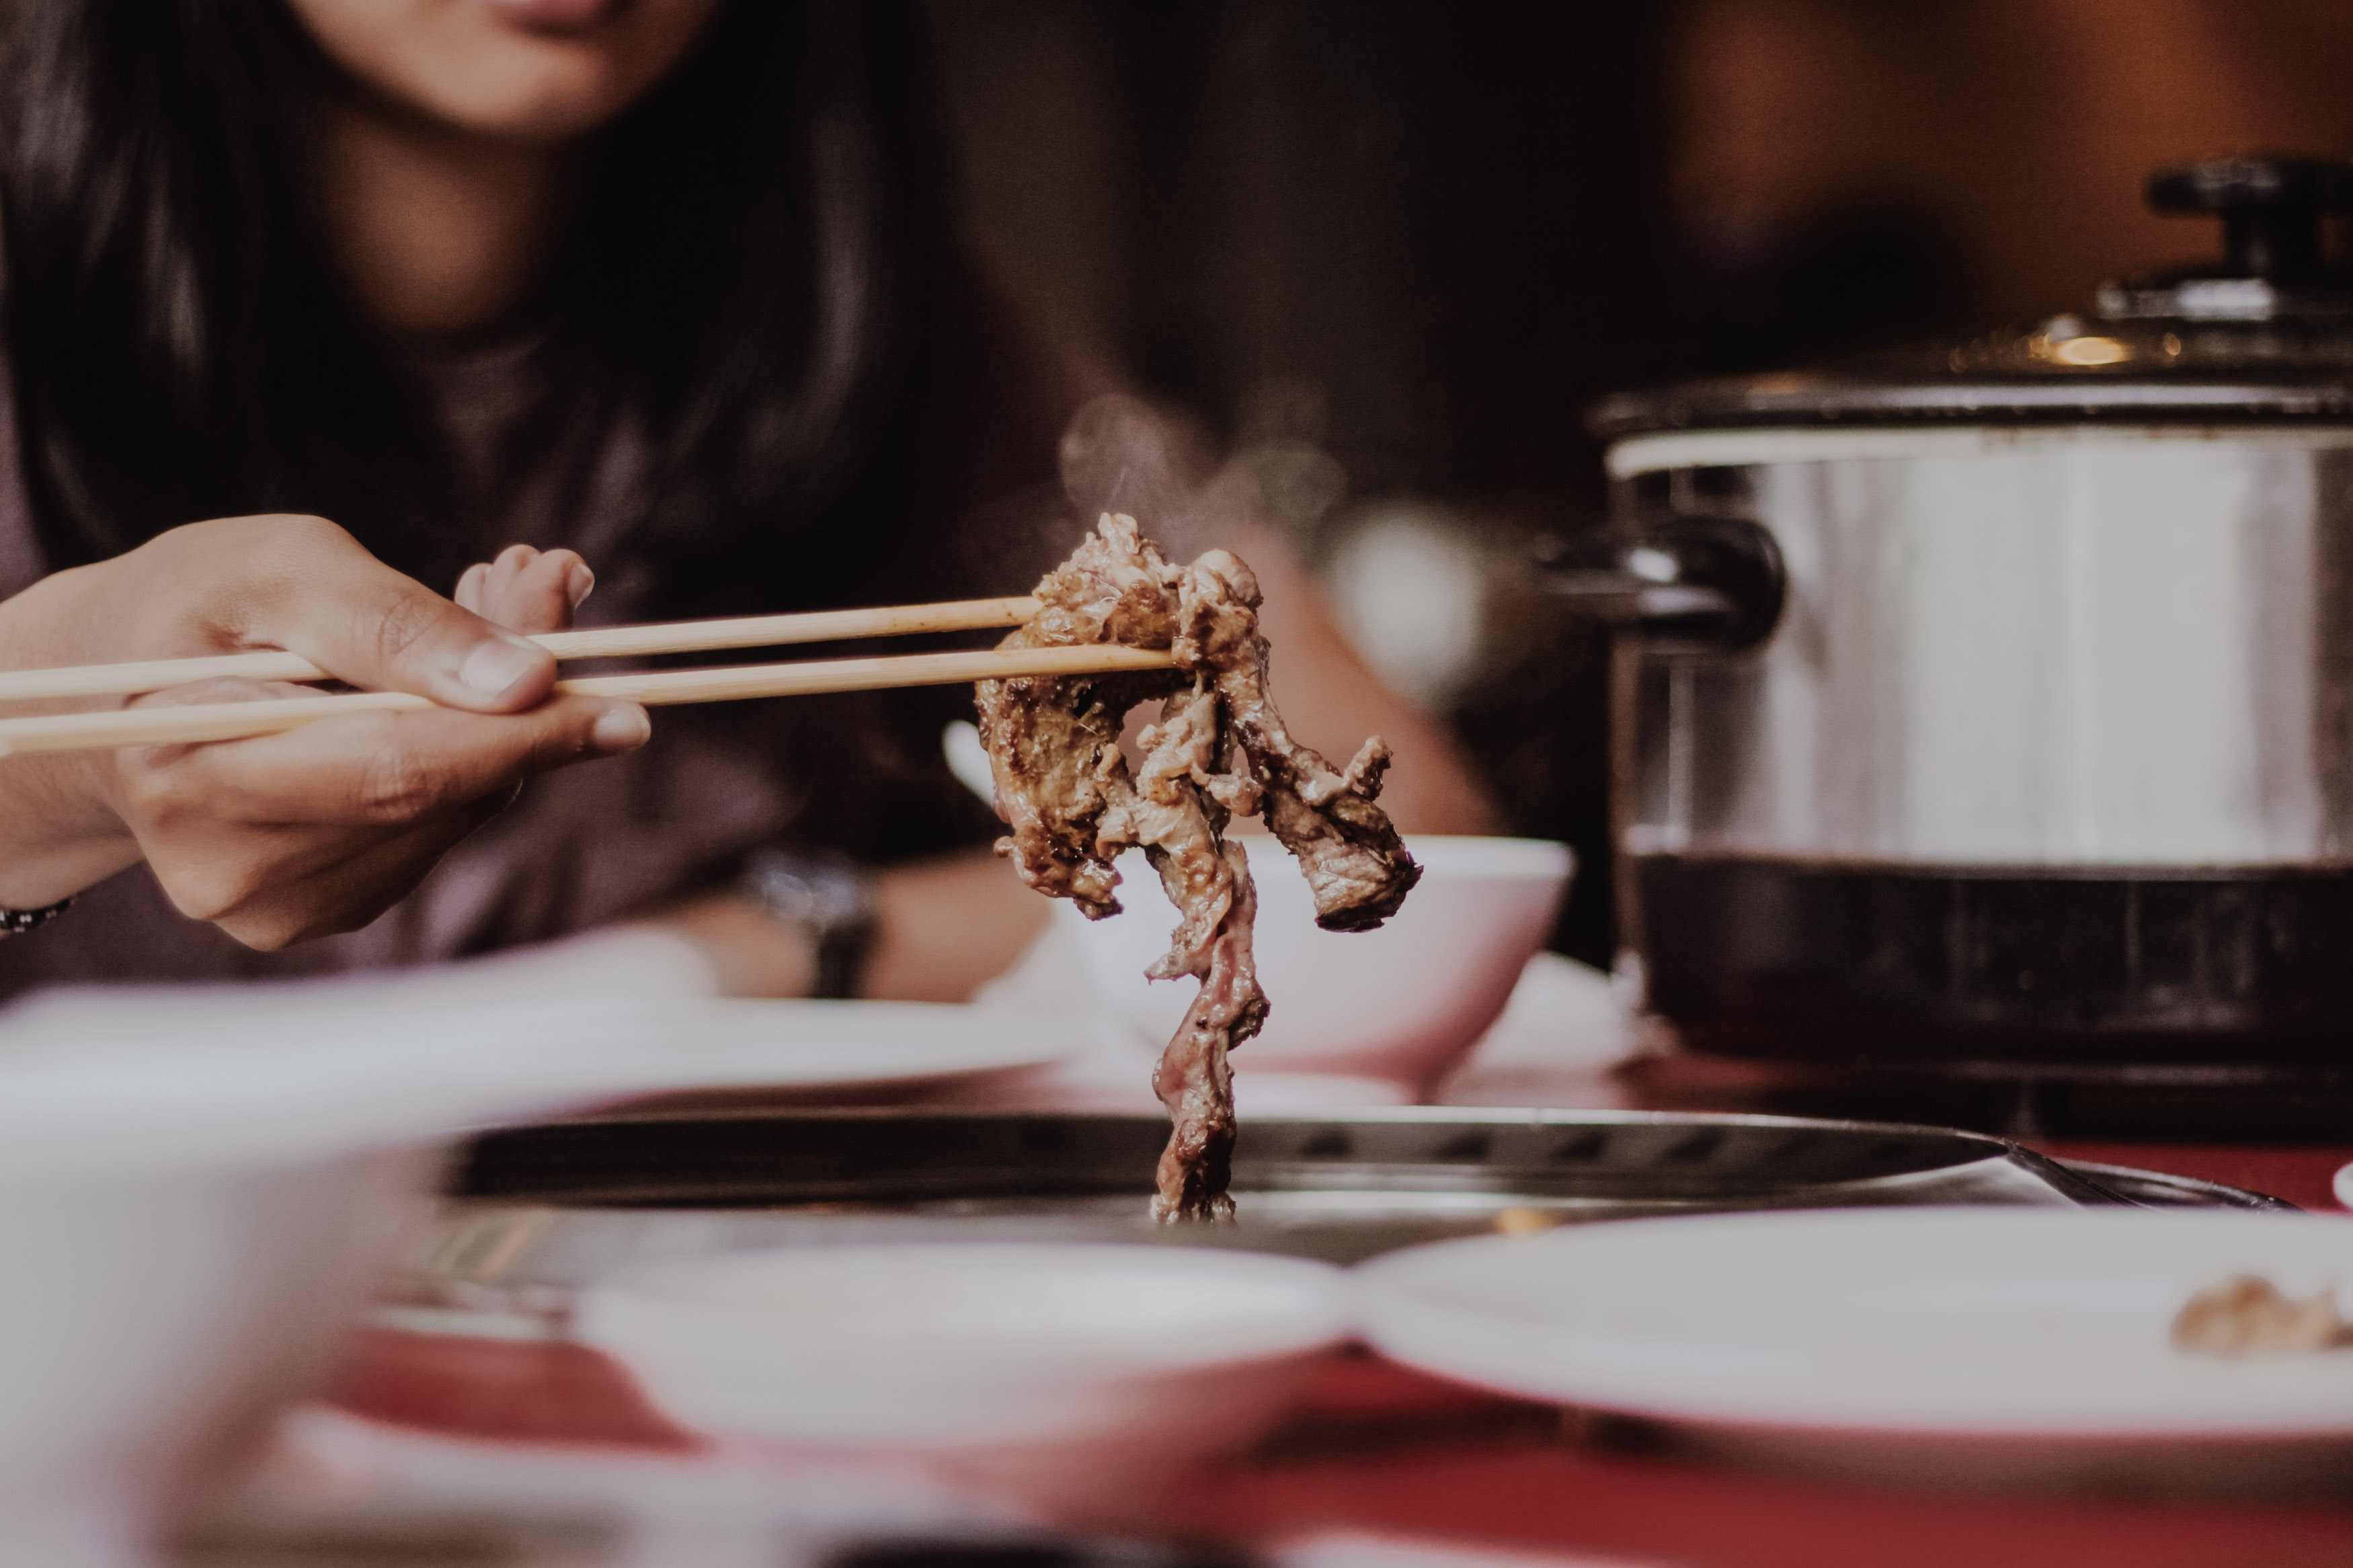 A close-up of women taking strips of steaming meat with chopsticks next to a cooker.